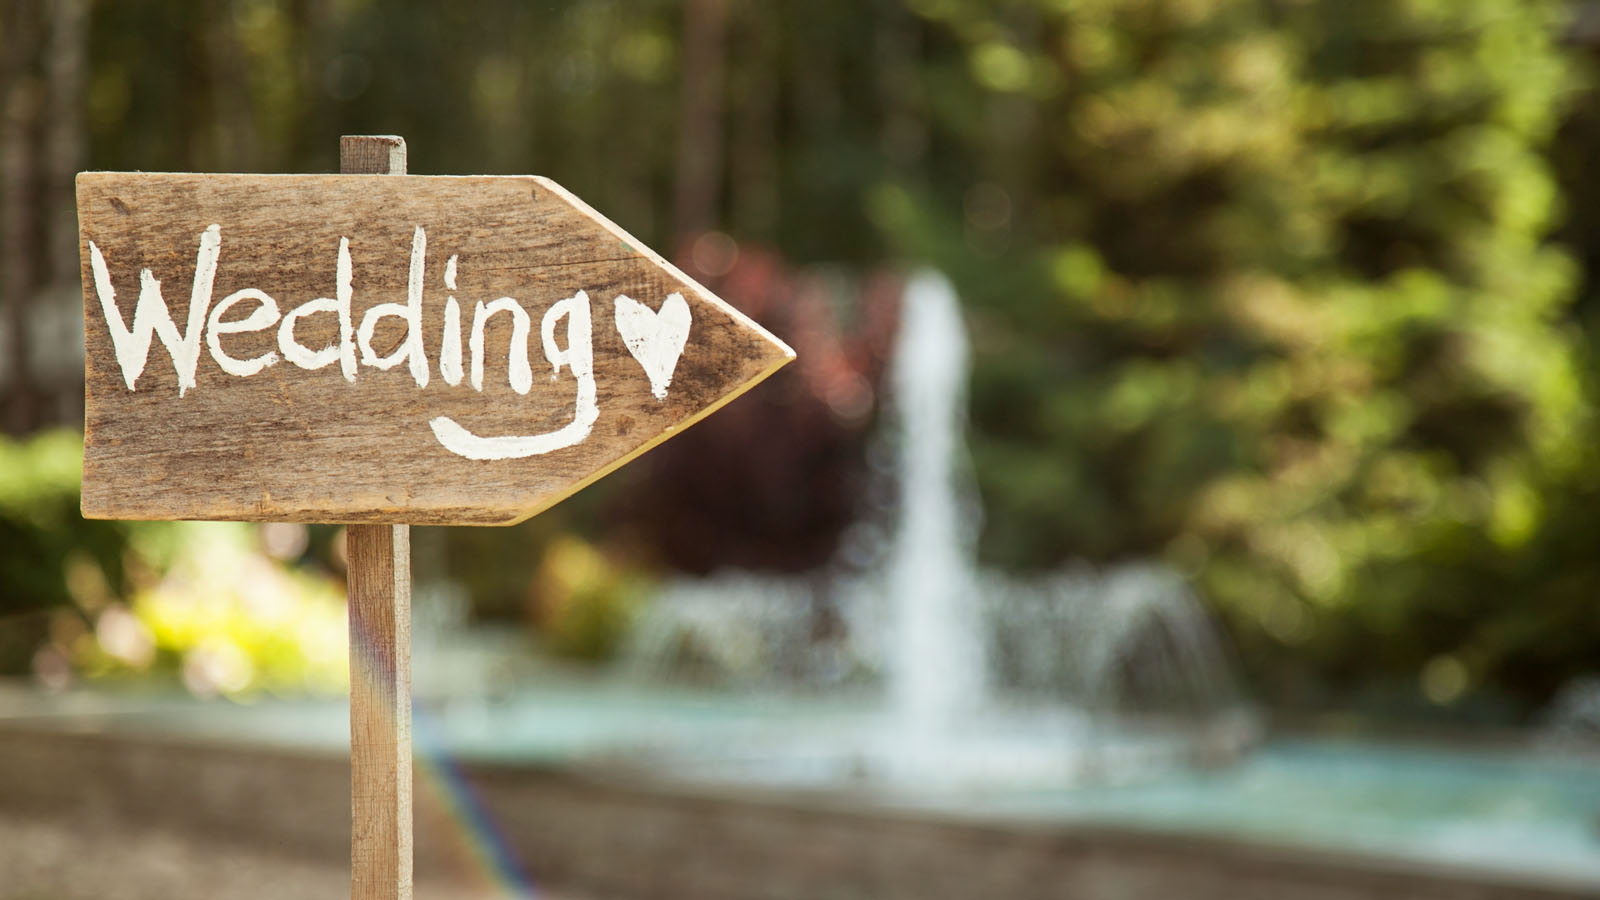 The old good traditions are alive: what to give for a wooden wedding